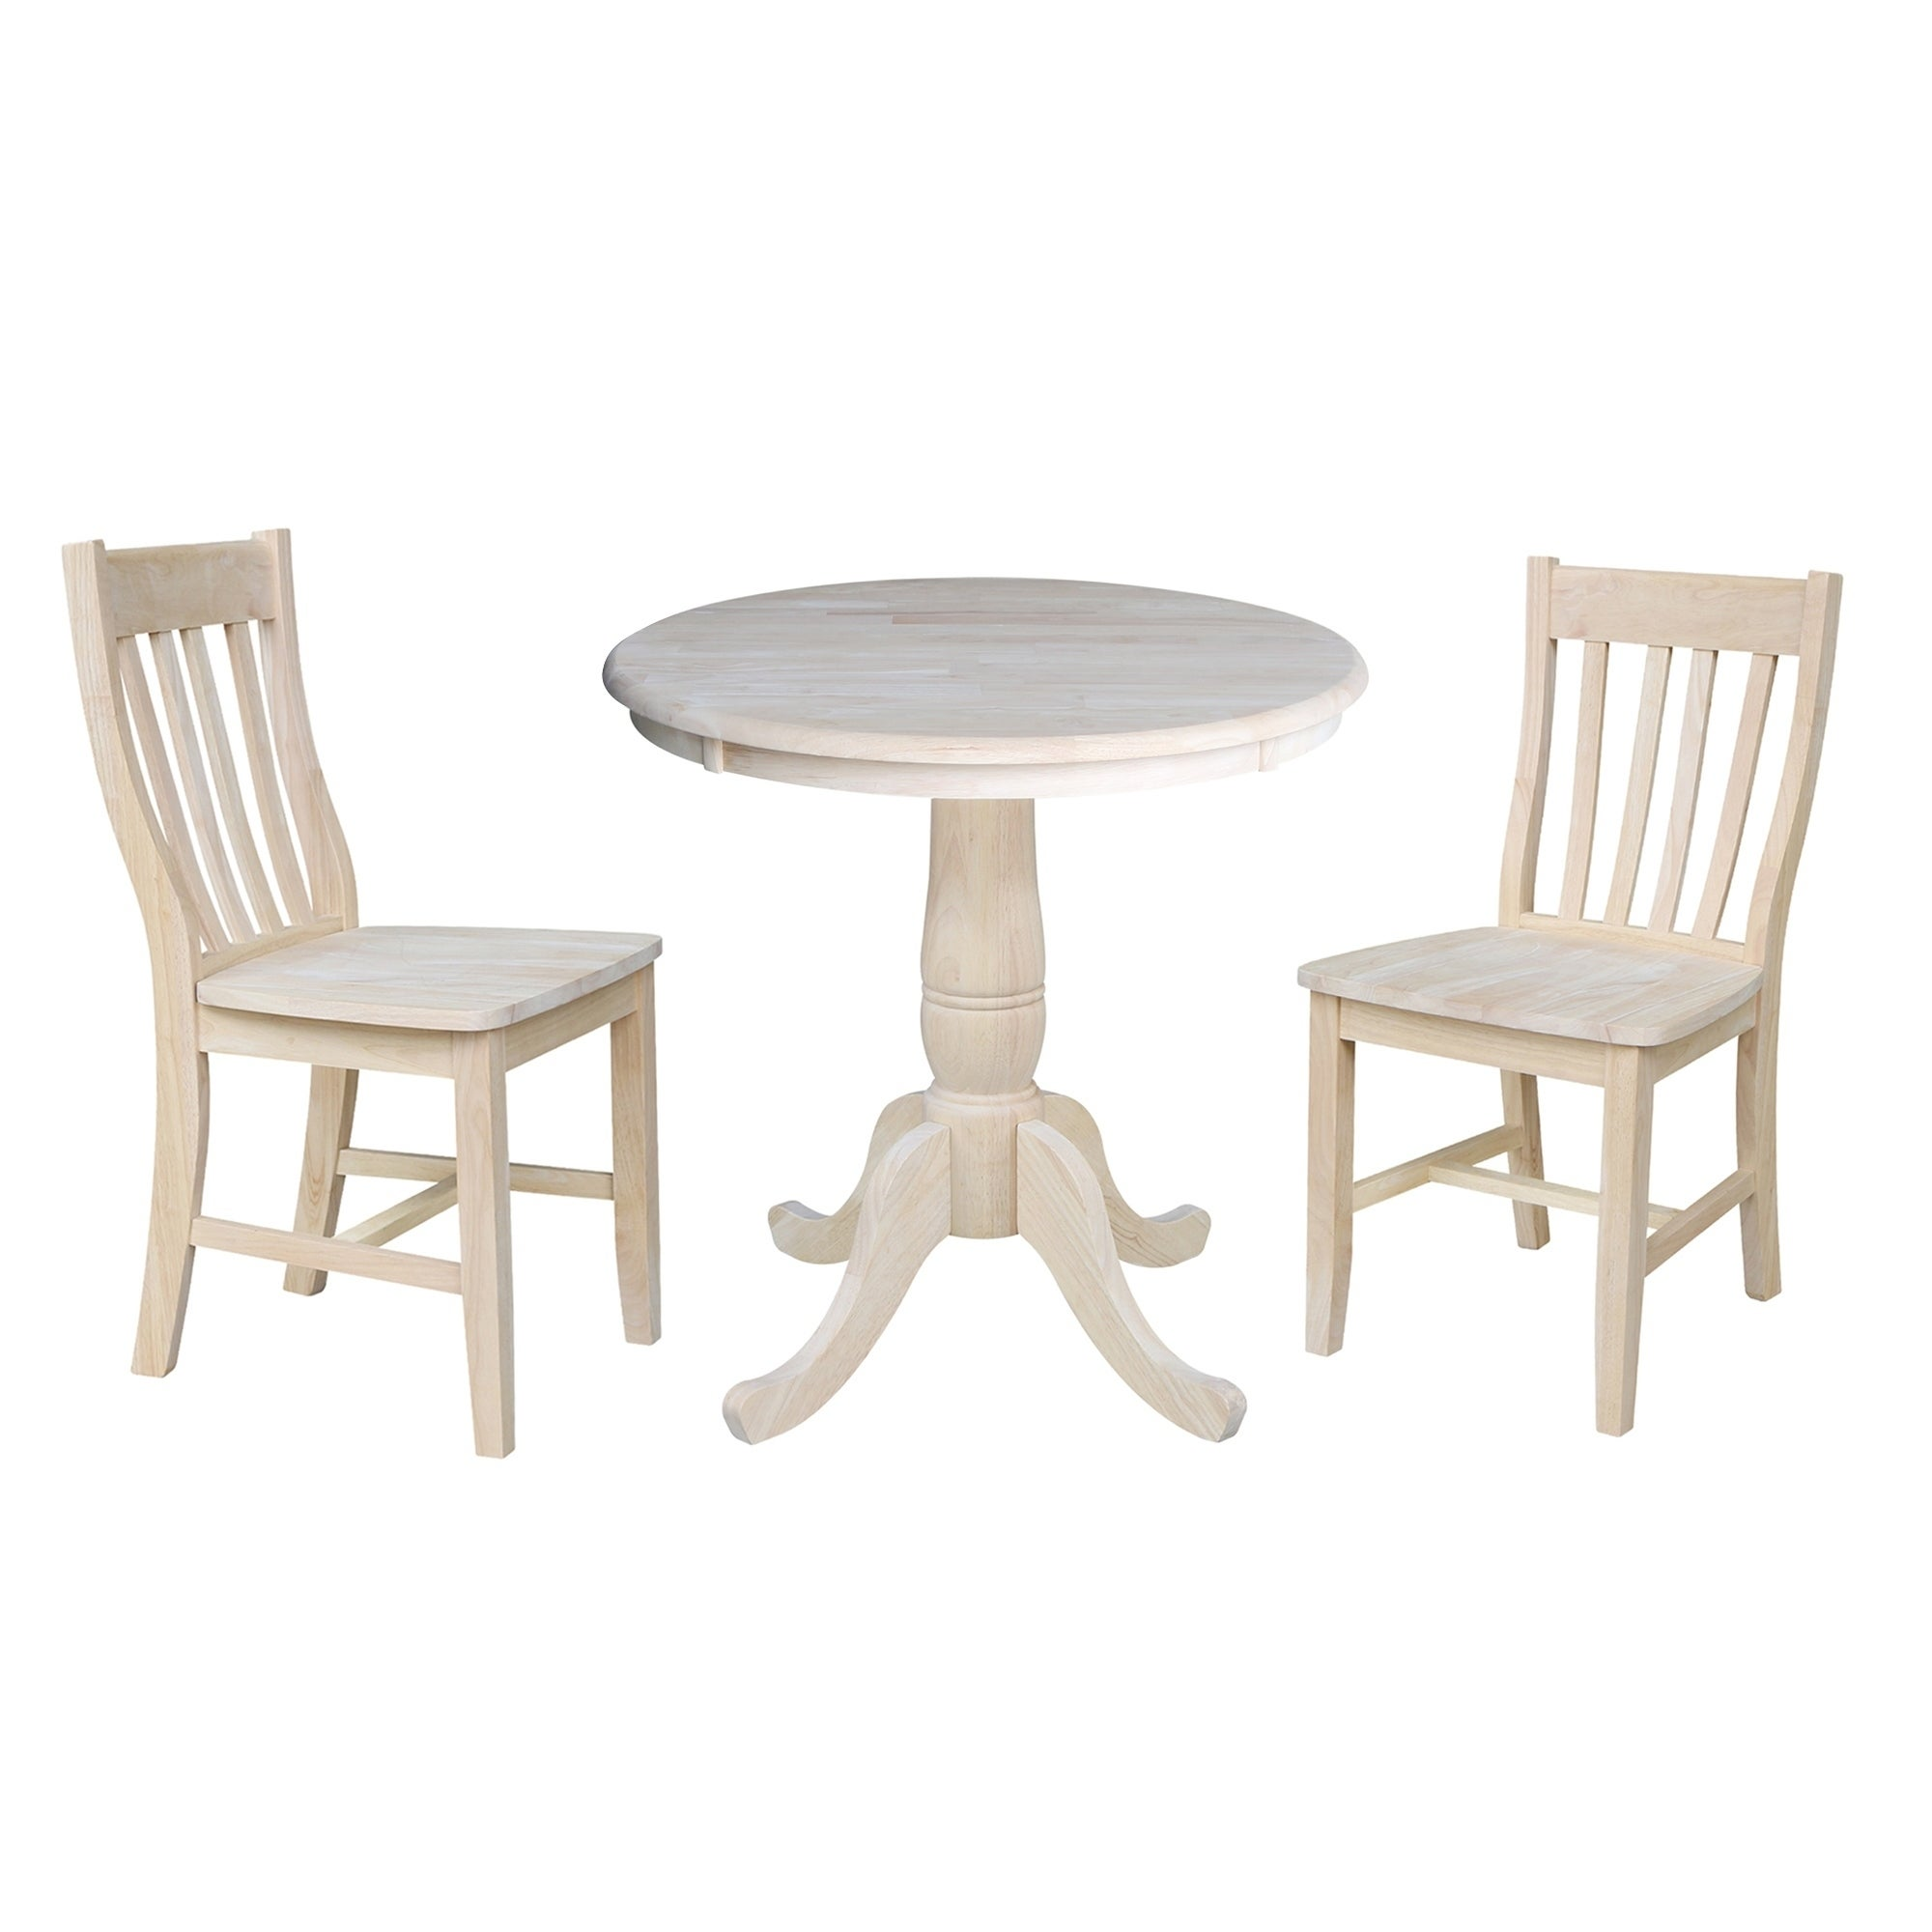 30 Round Pedestal Dining Table With 2 Cafe Chairs Unfinished 3 Piece Set Product Description For Those Who Reciate High Quality Wood Furniture